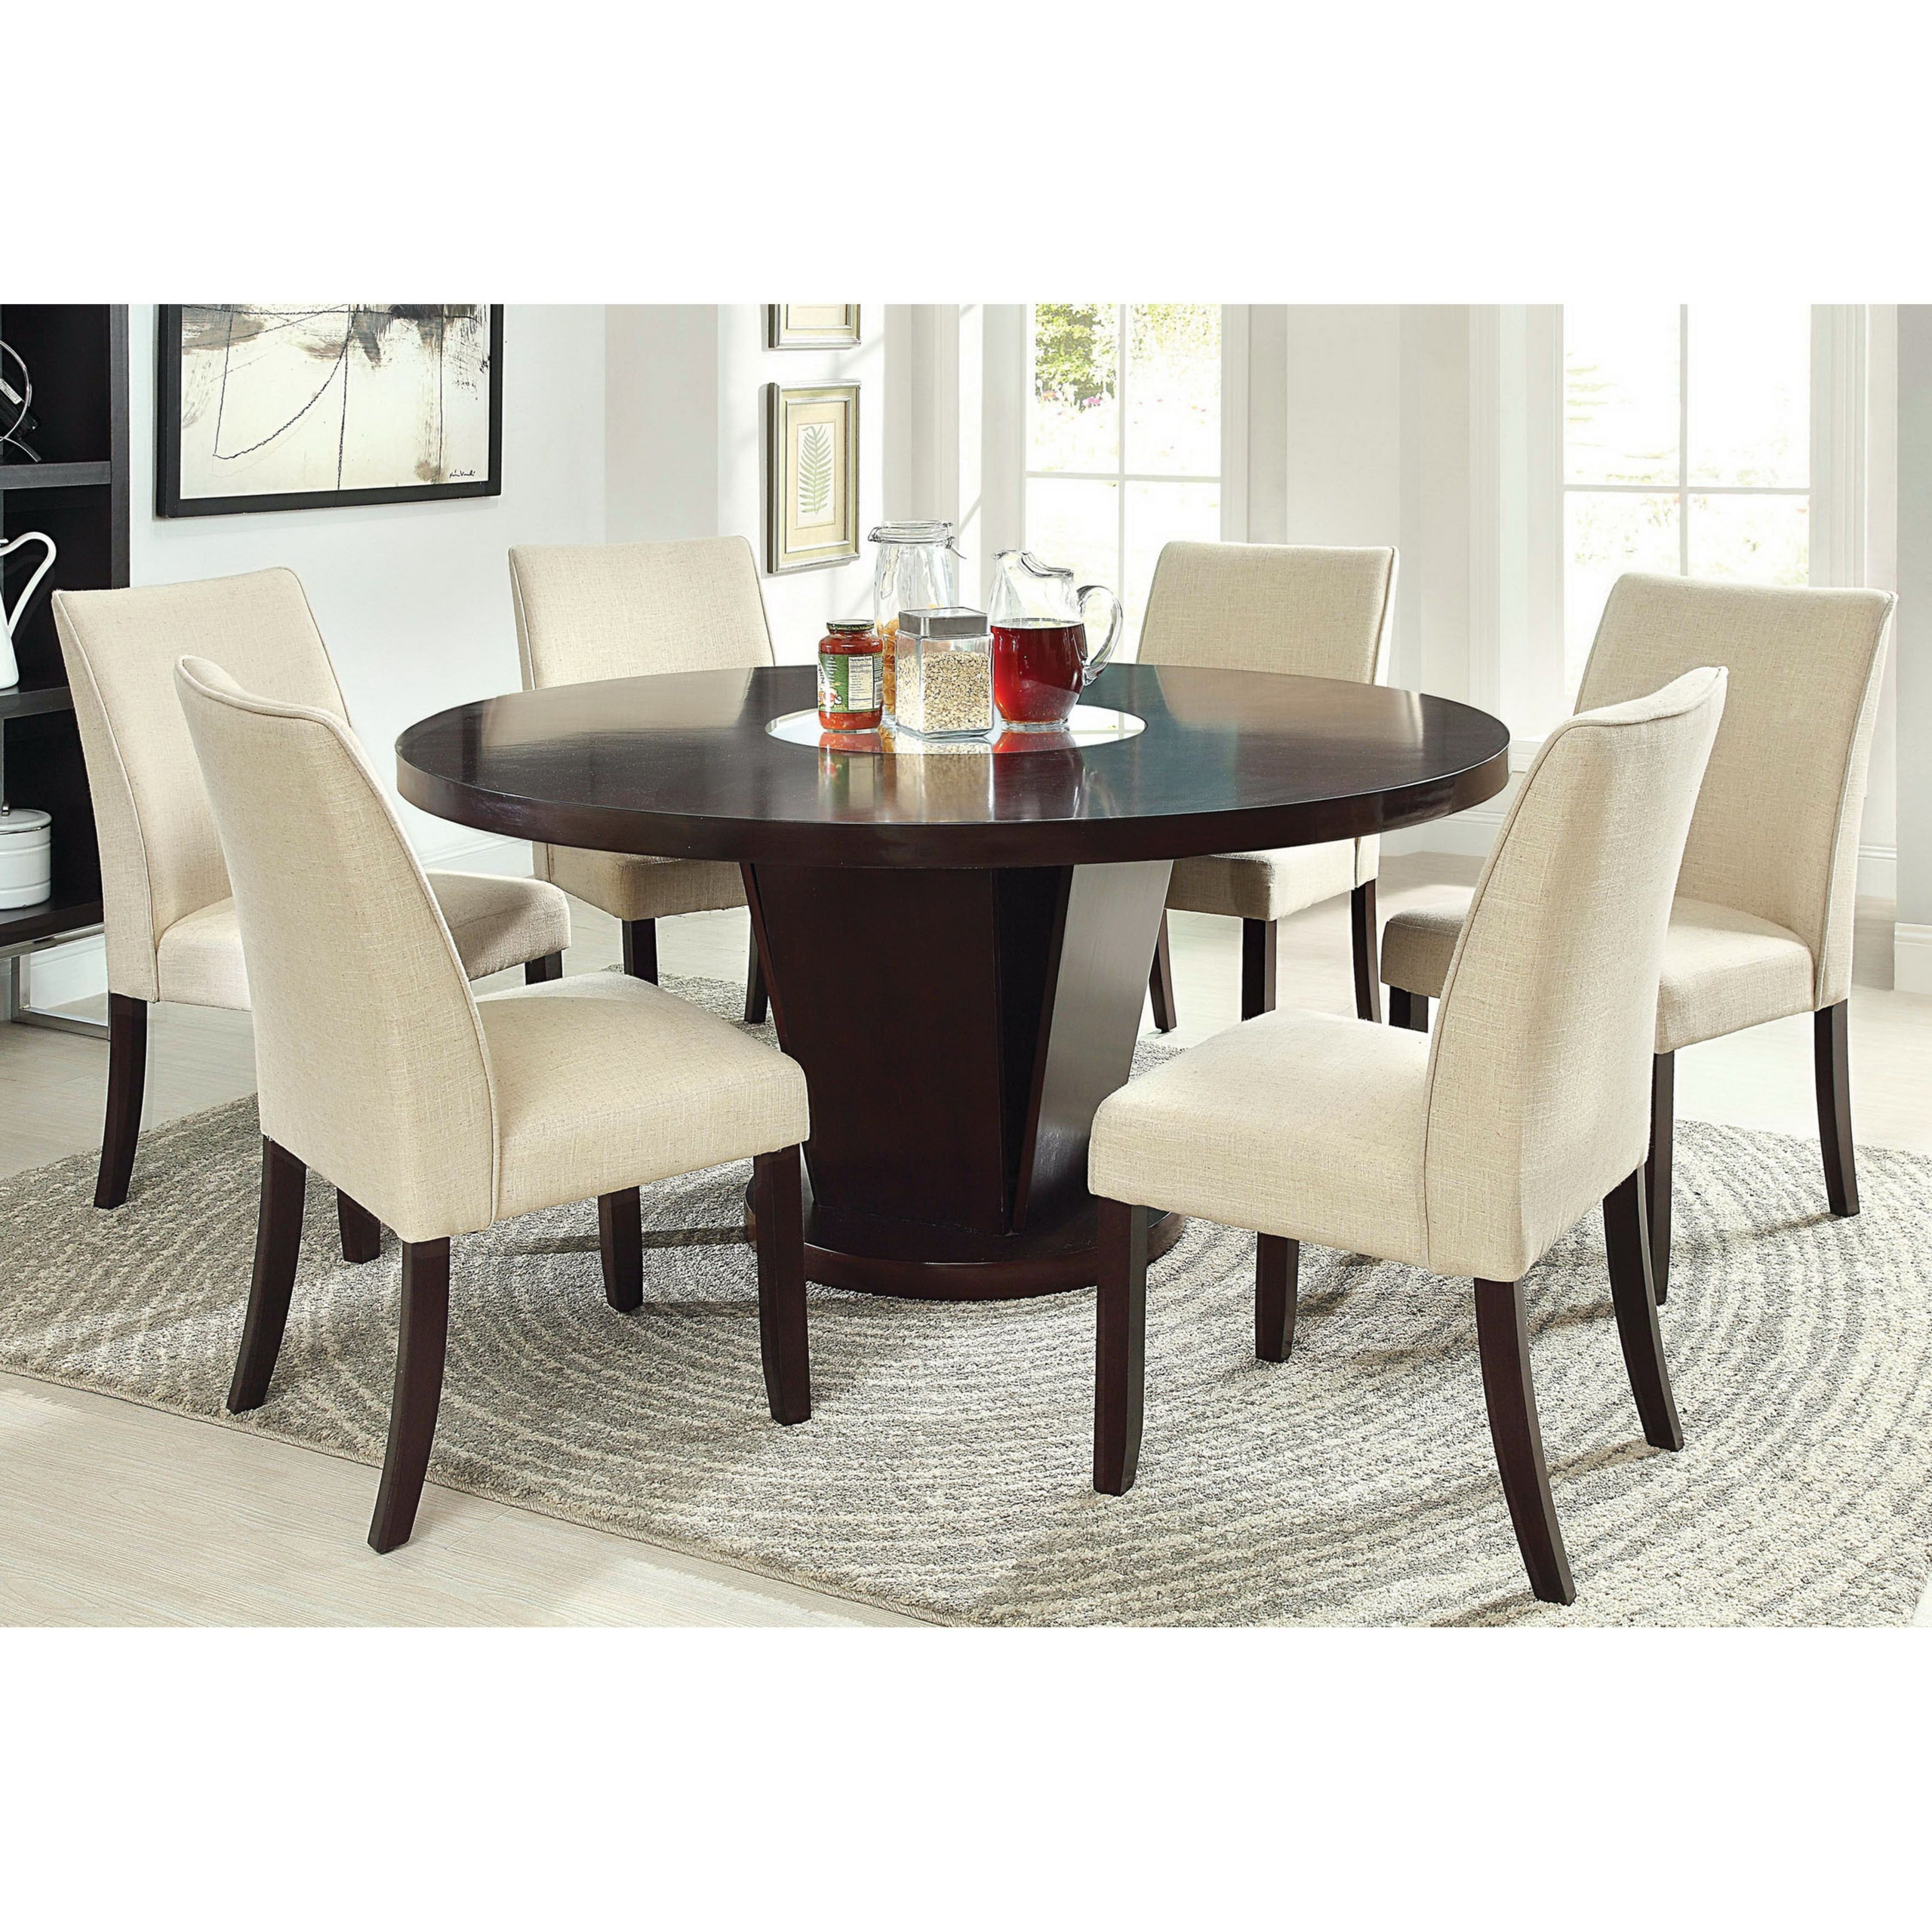 50 Round Dining Table For 6 You Ll Love In 2020 Visual Hunt